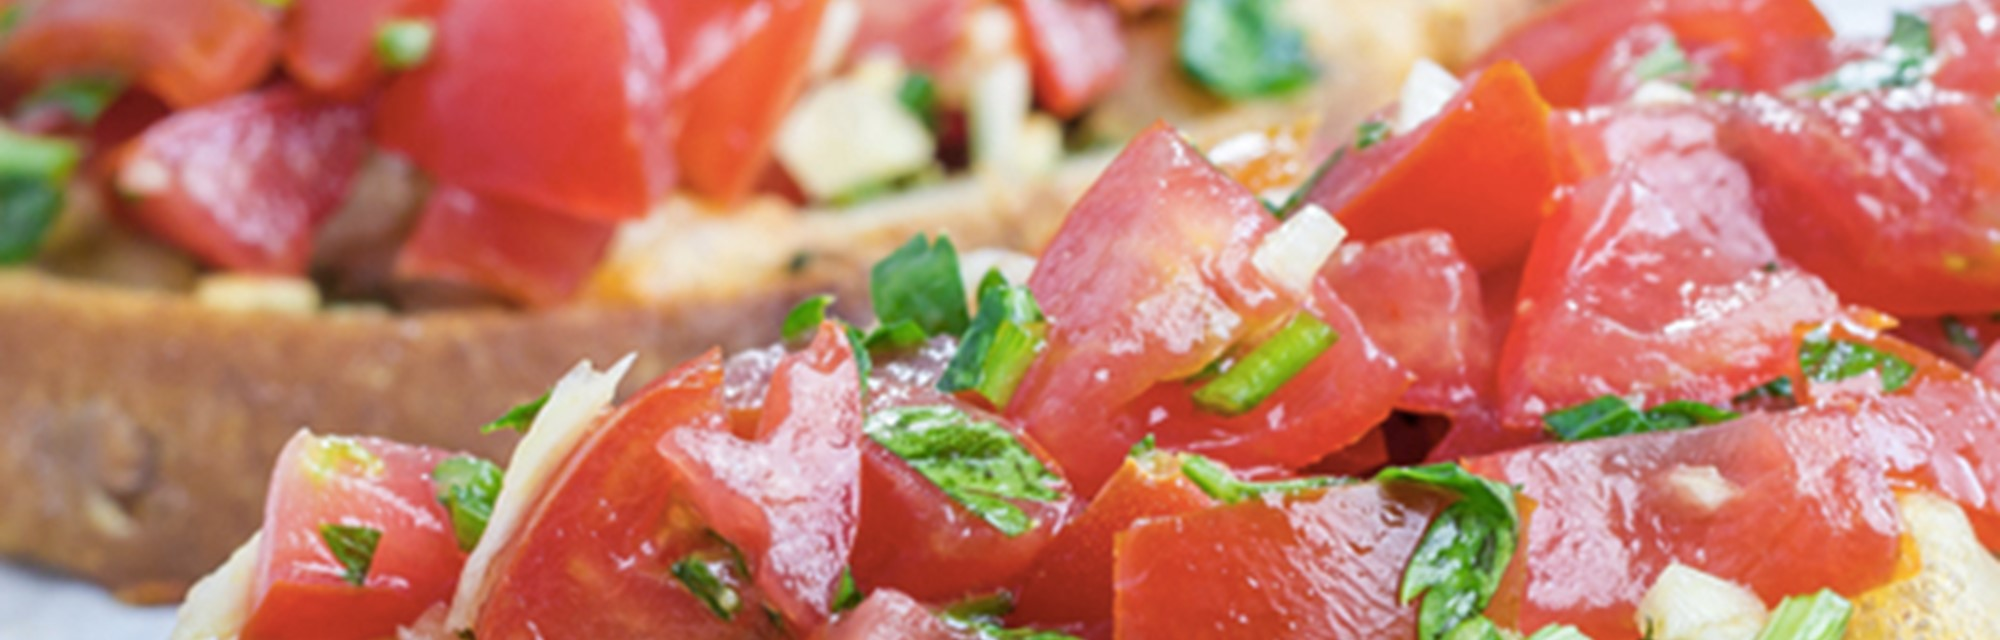 Header - Bruschetta